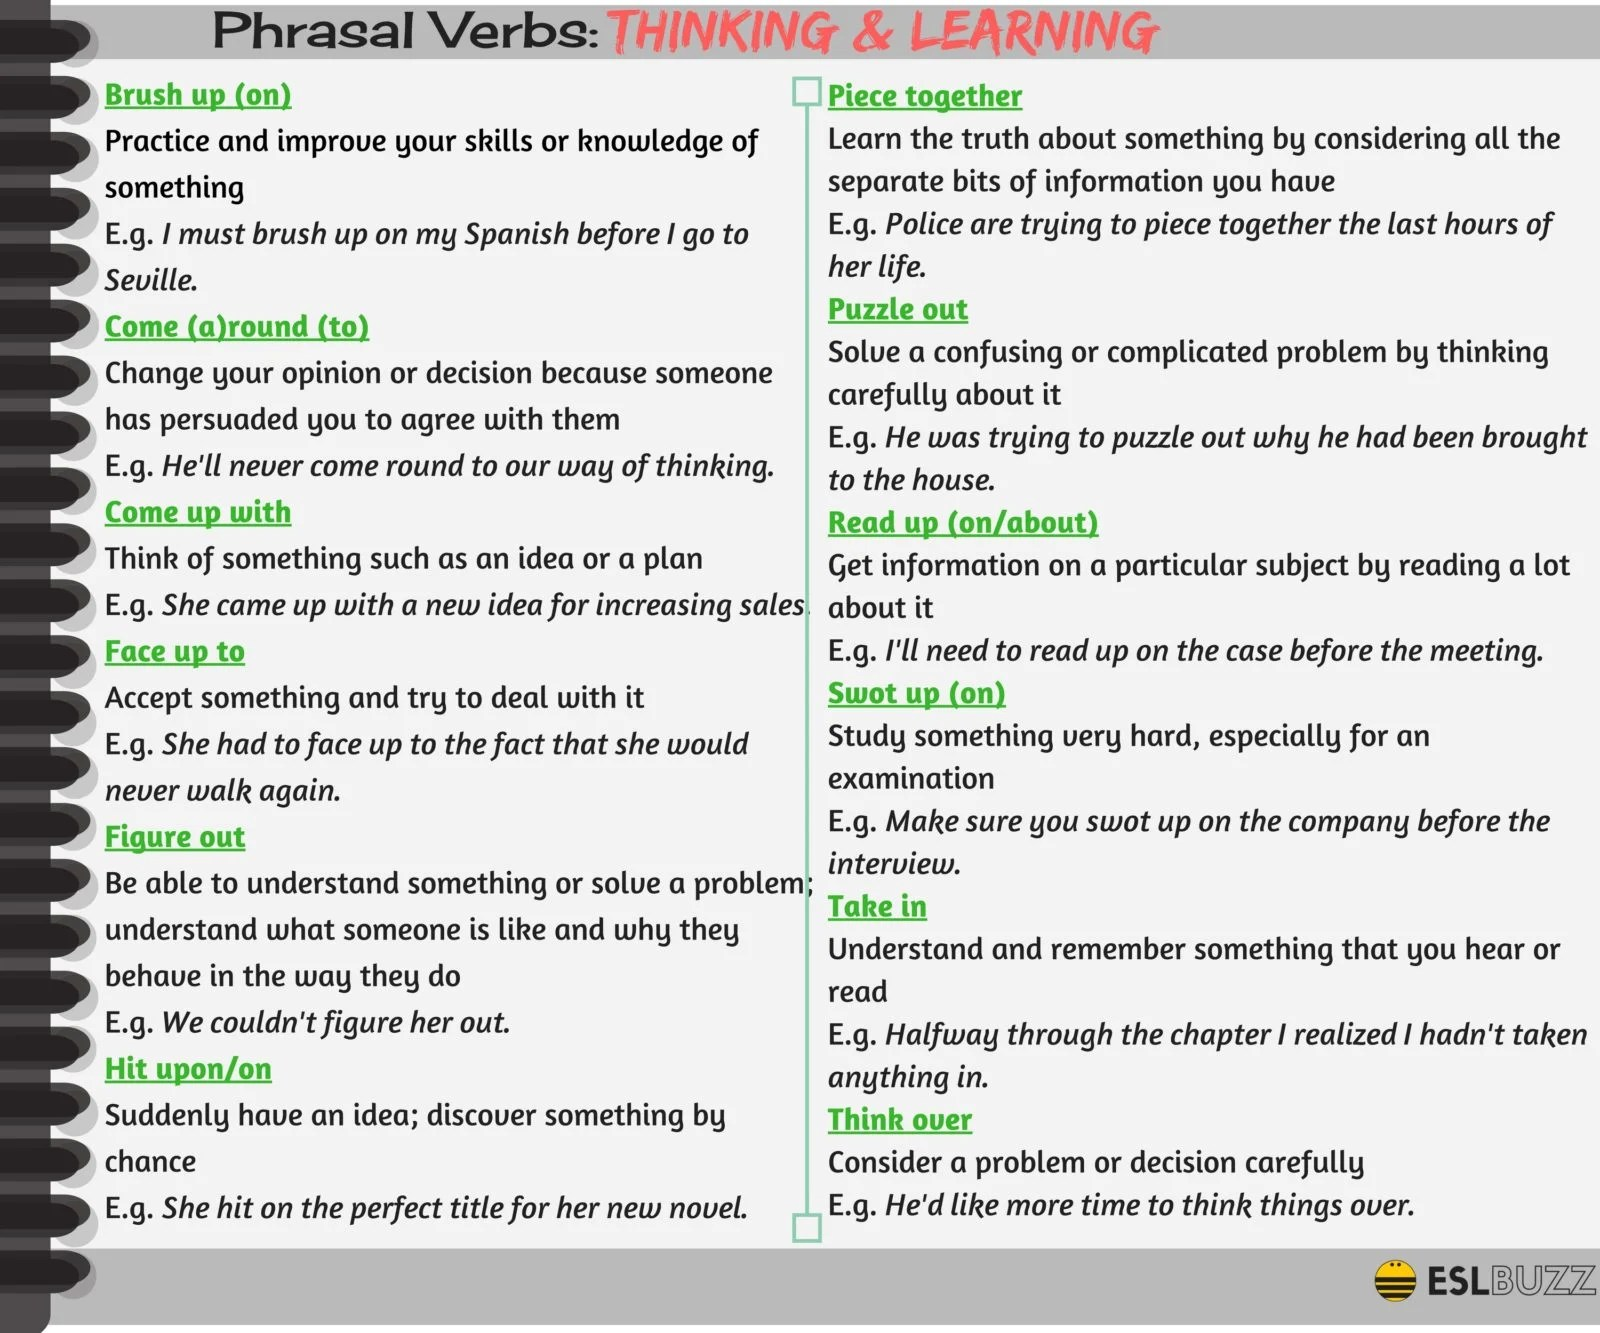 Useful Phrasal Verbs and Idioms: Thinking & Learning